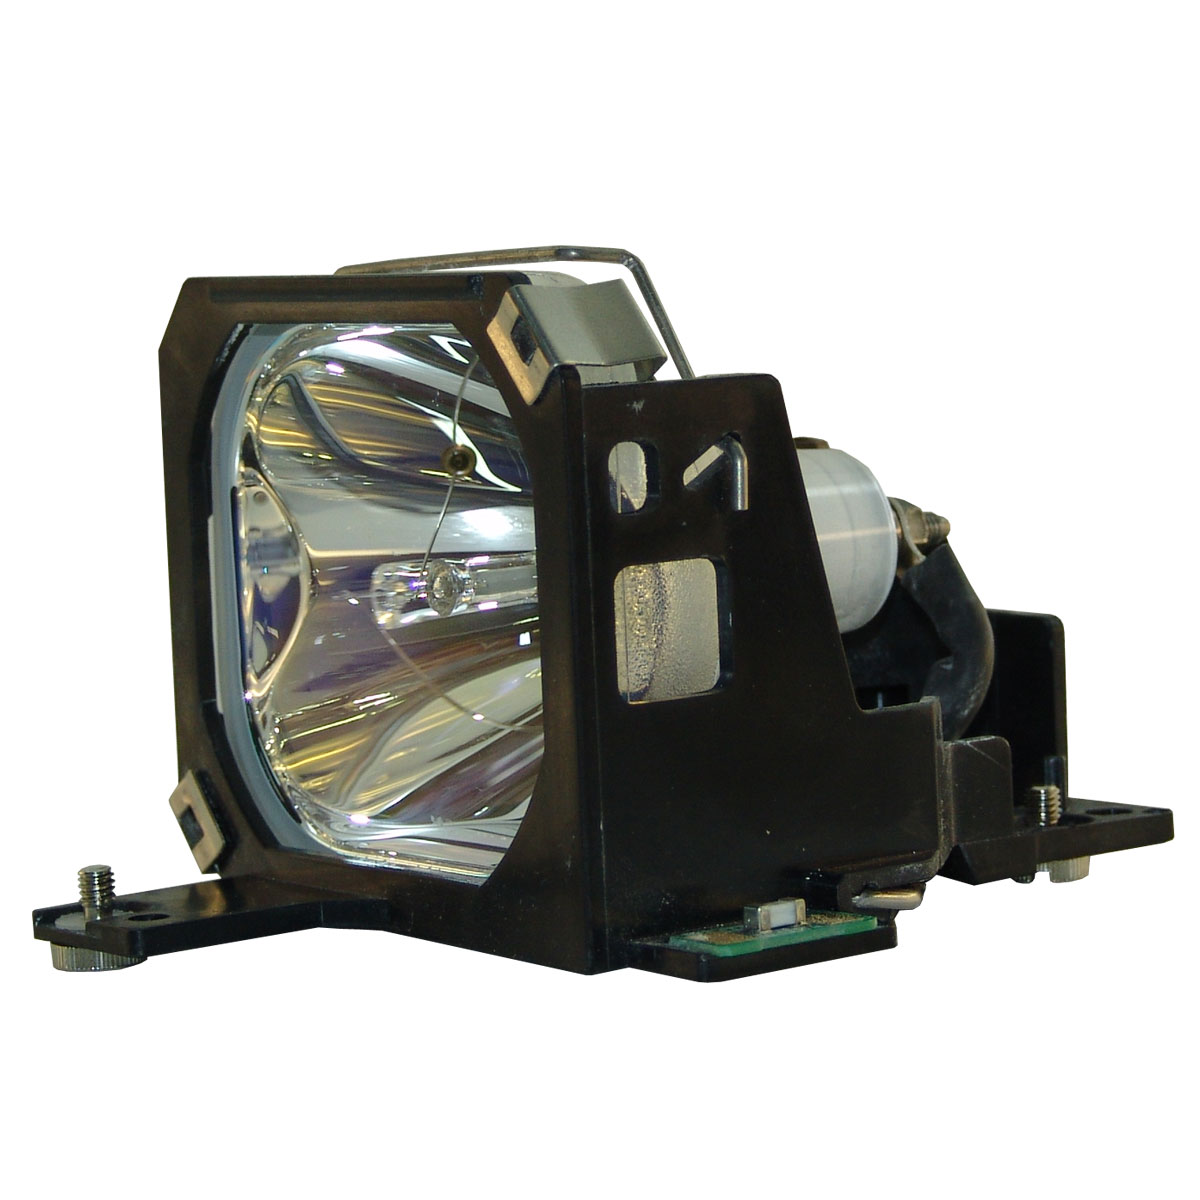 Original Philips Projector Lamp Replacement with Housing for Boxlight MP350M-930 - image 5 de 5